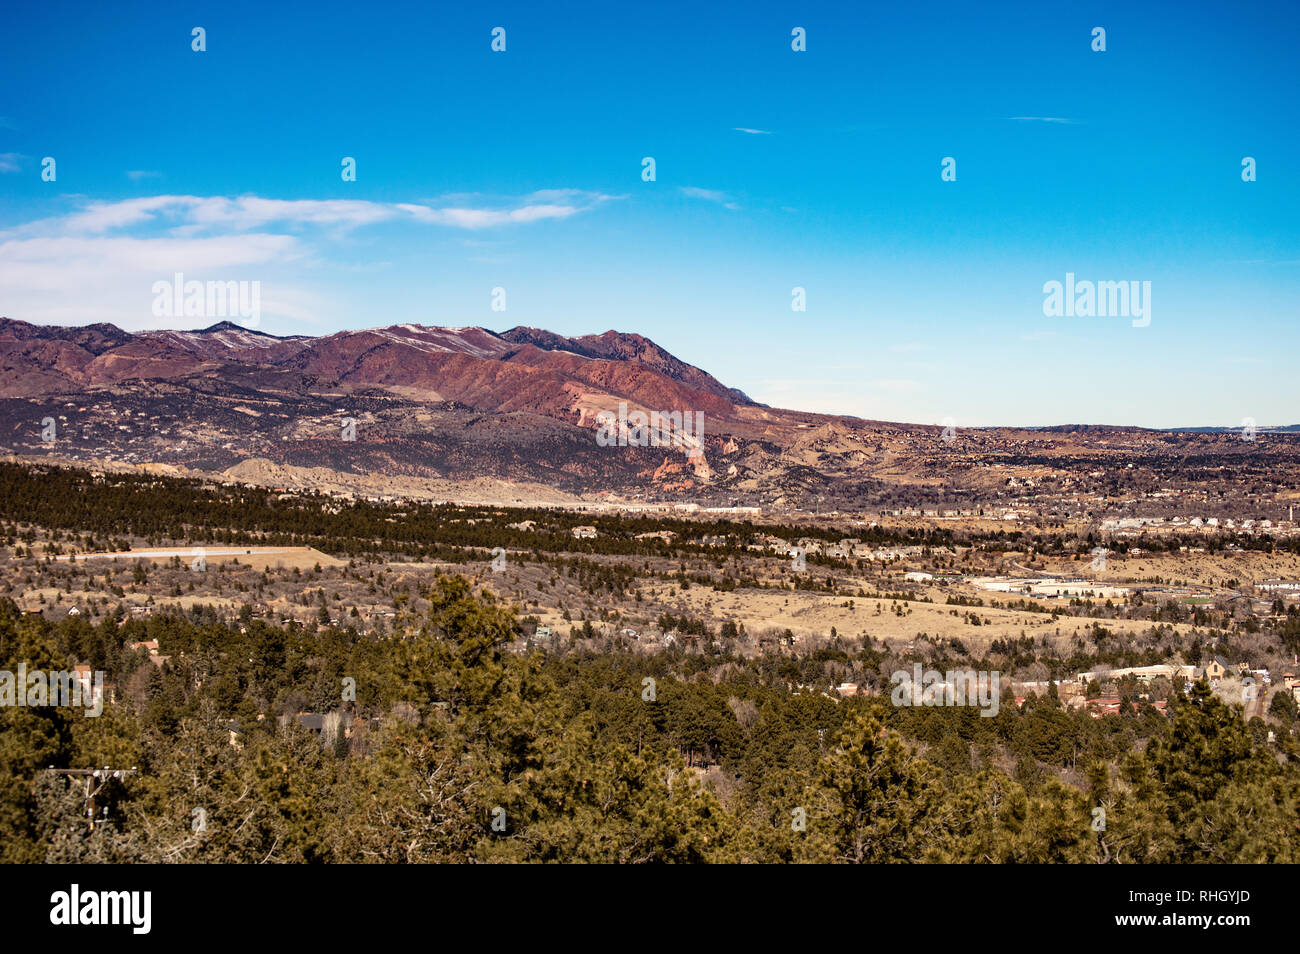 View looking west from Colorado Springs, Colorado on a winter day towards the Rocky Mountain foothills - Stock Image